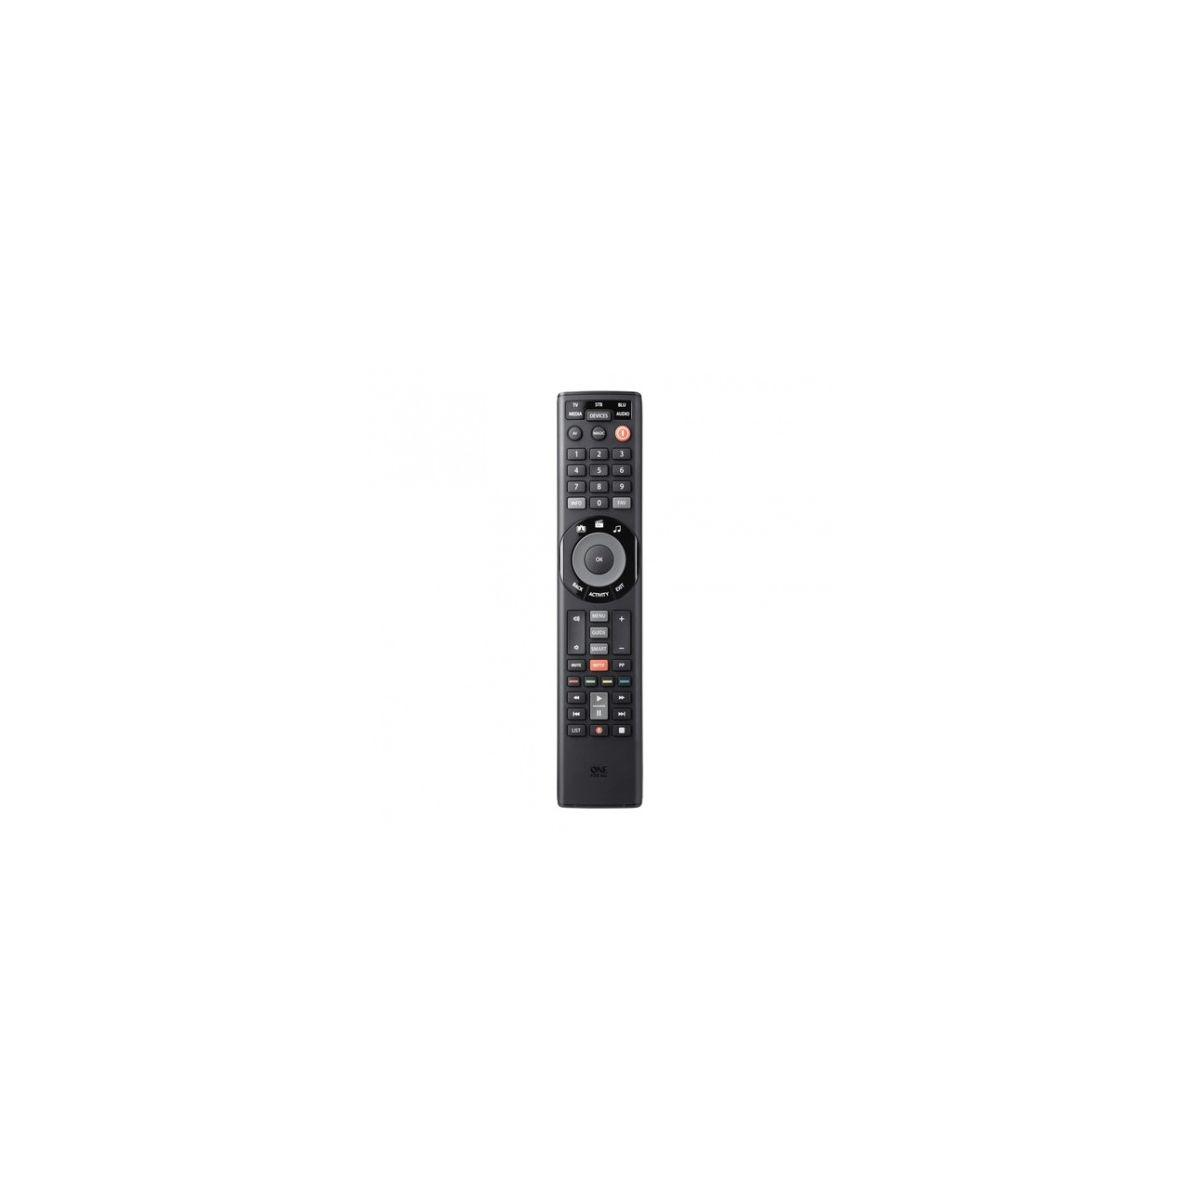 T?l?commande universelle one for all urc7955 smart control 5 -...